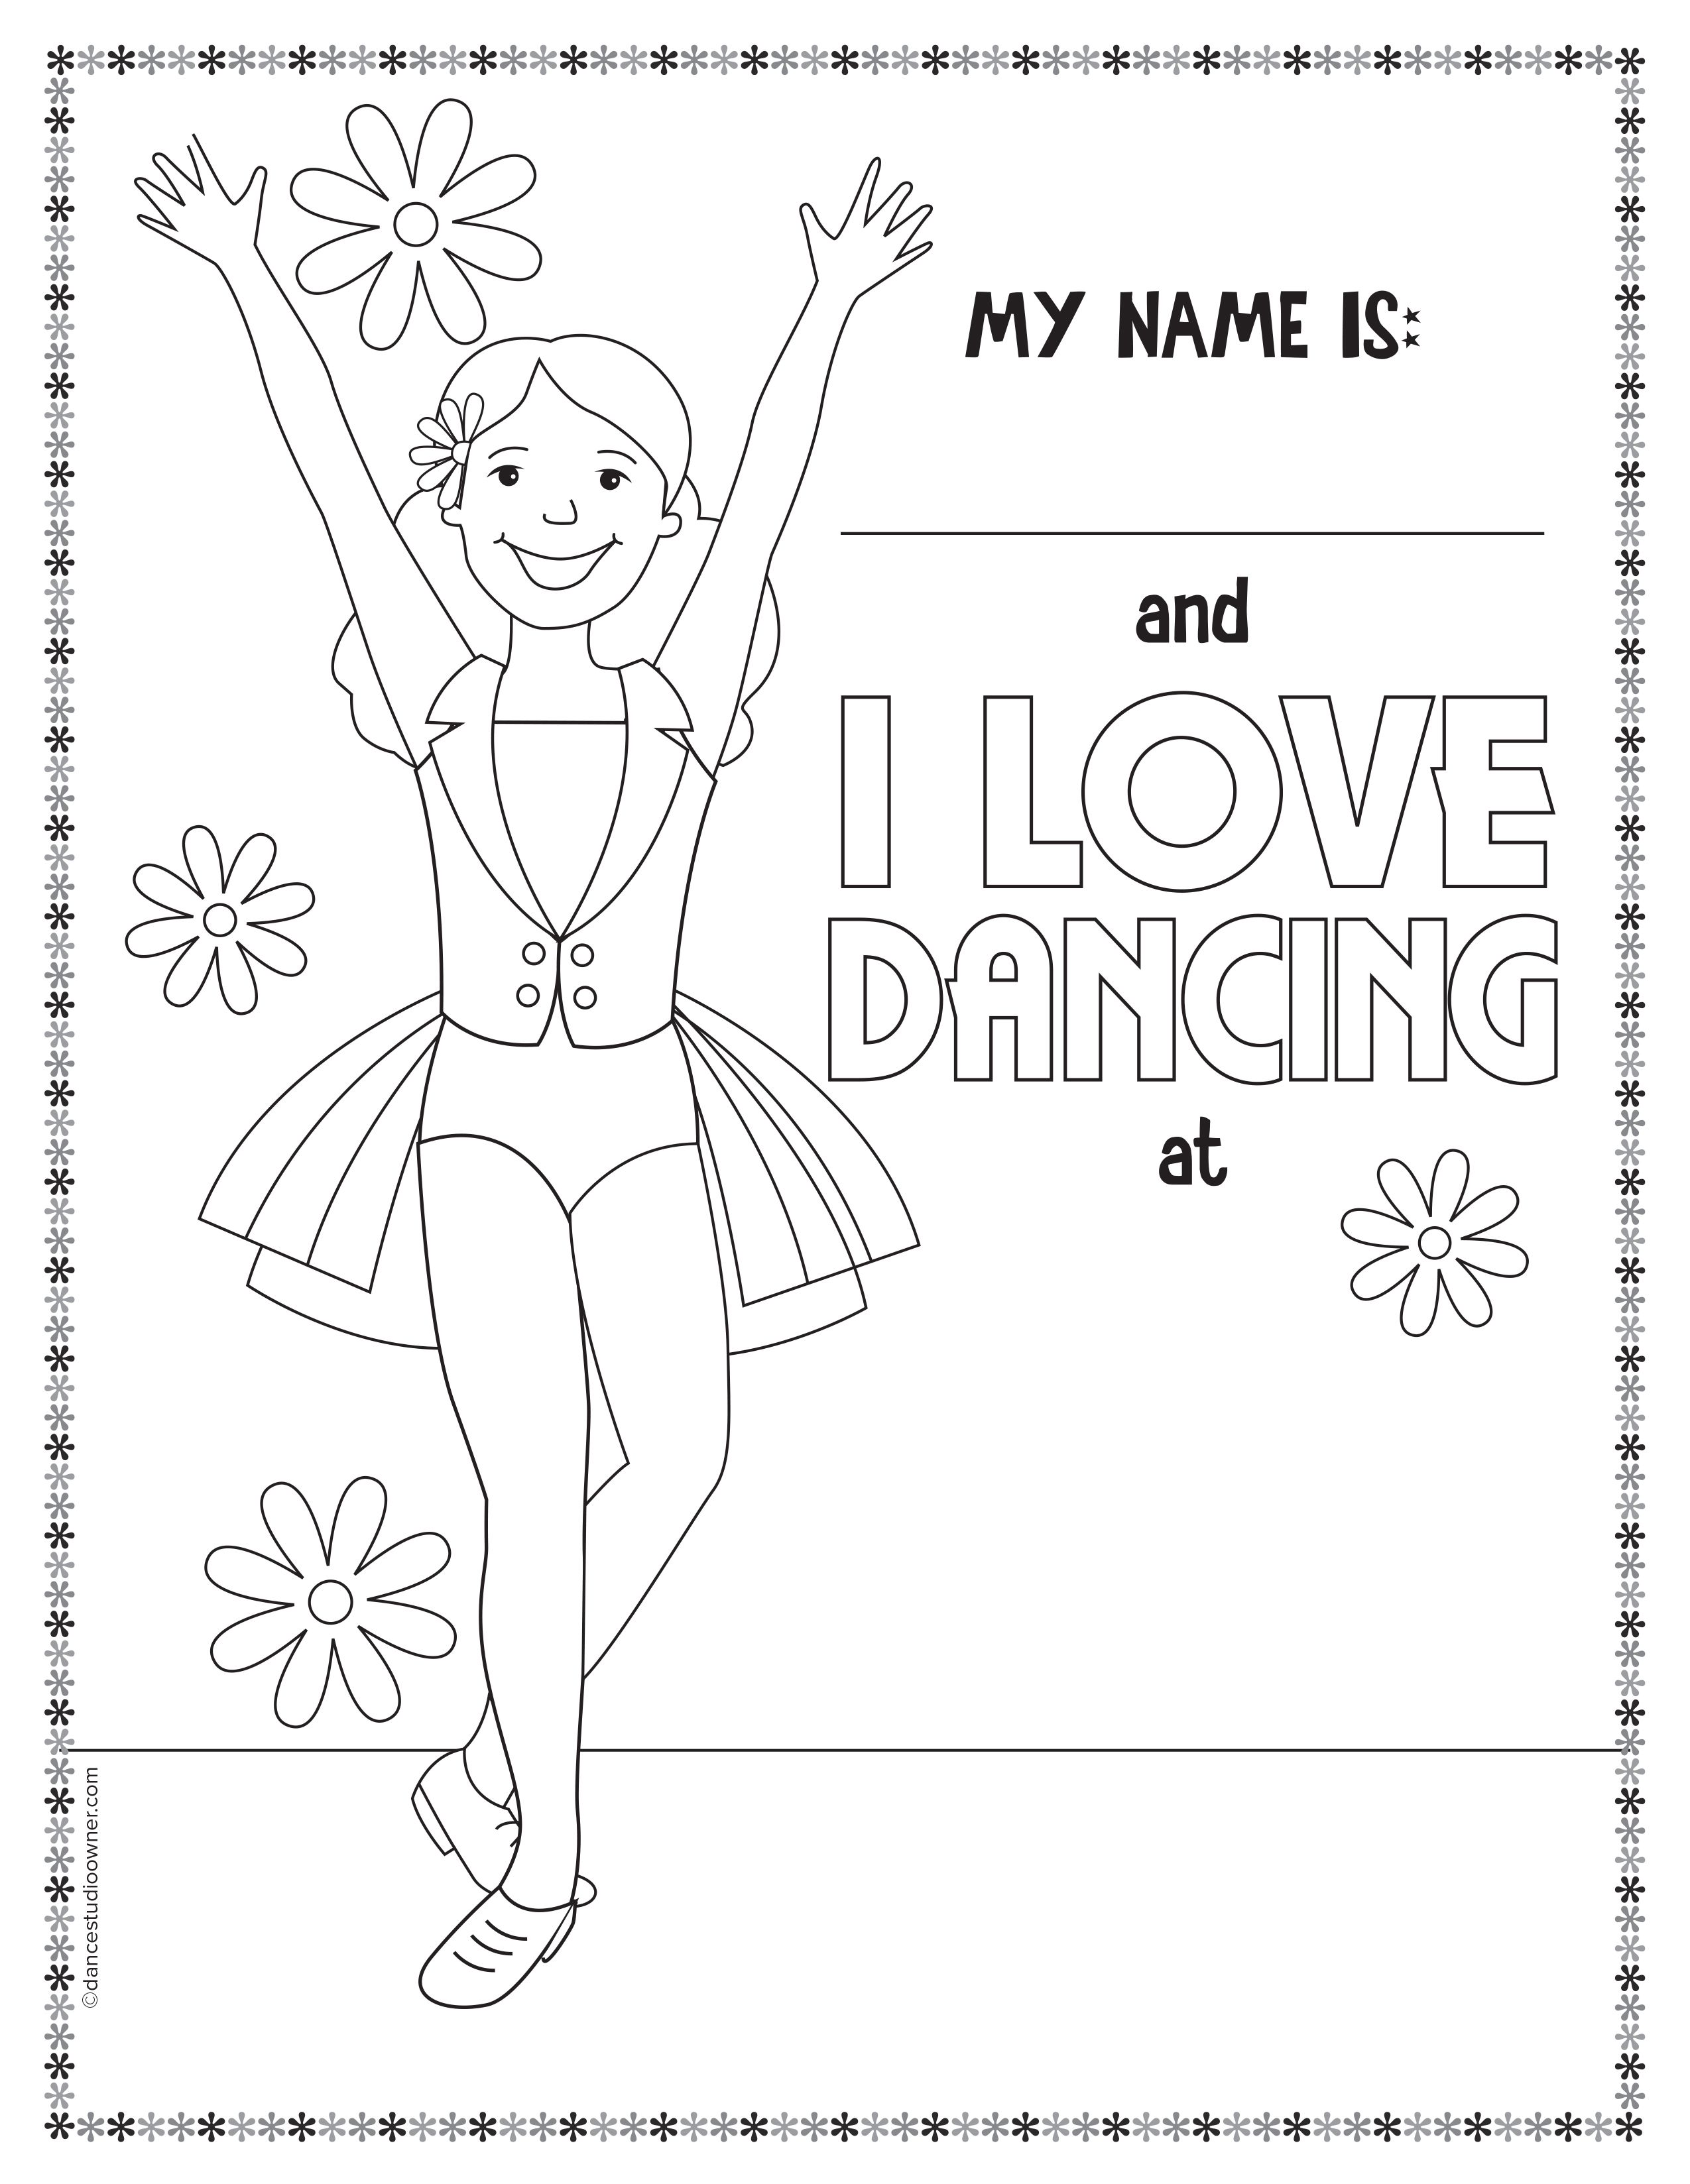 Get Free Printable Dance Coloring Pages Dance Coloring Pages